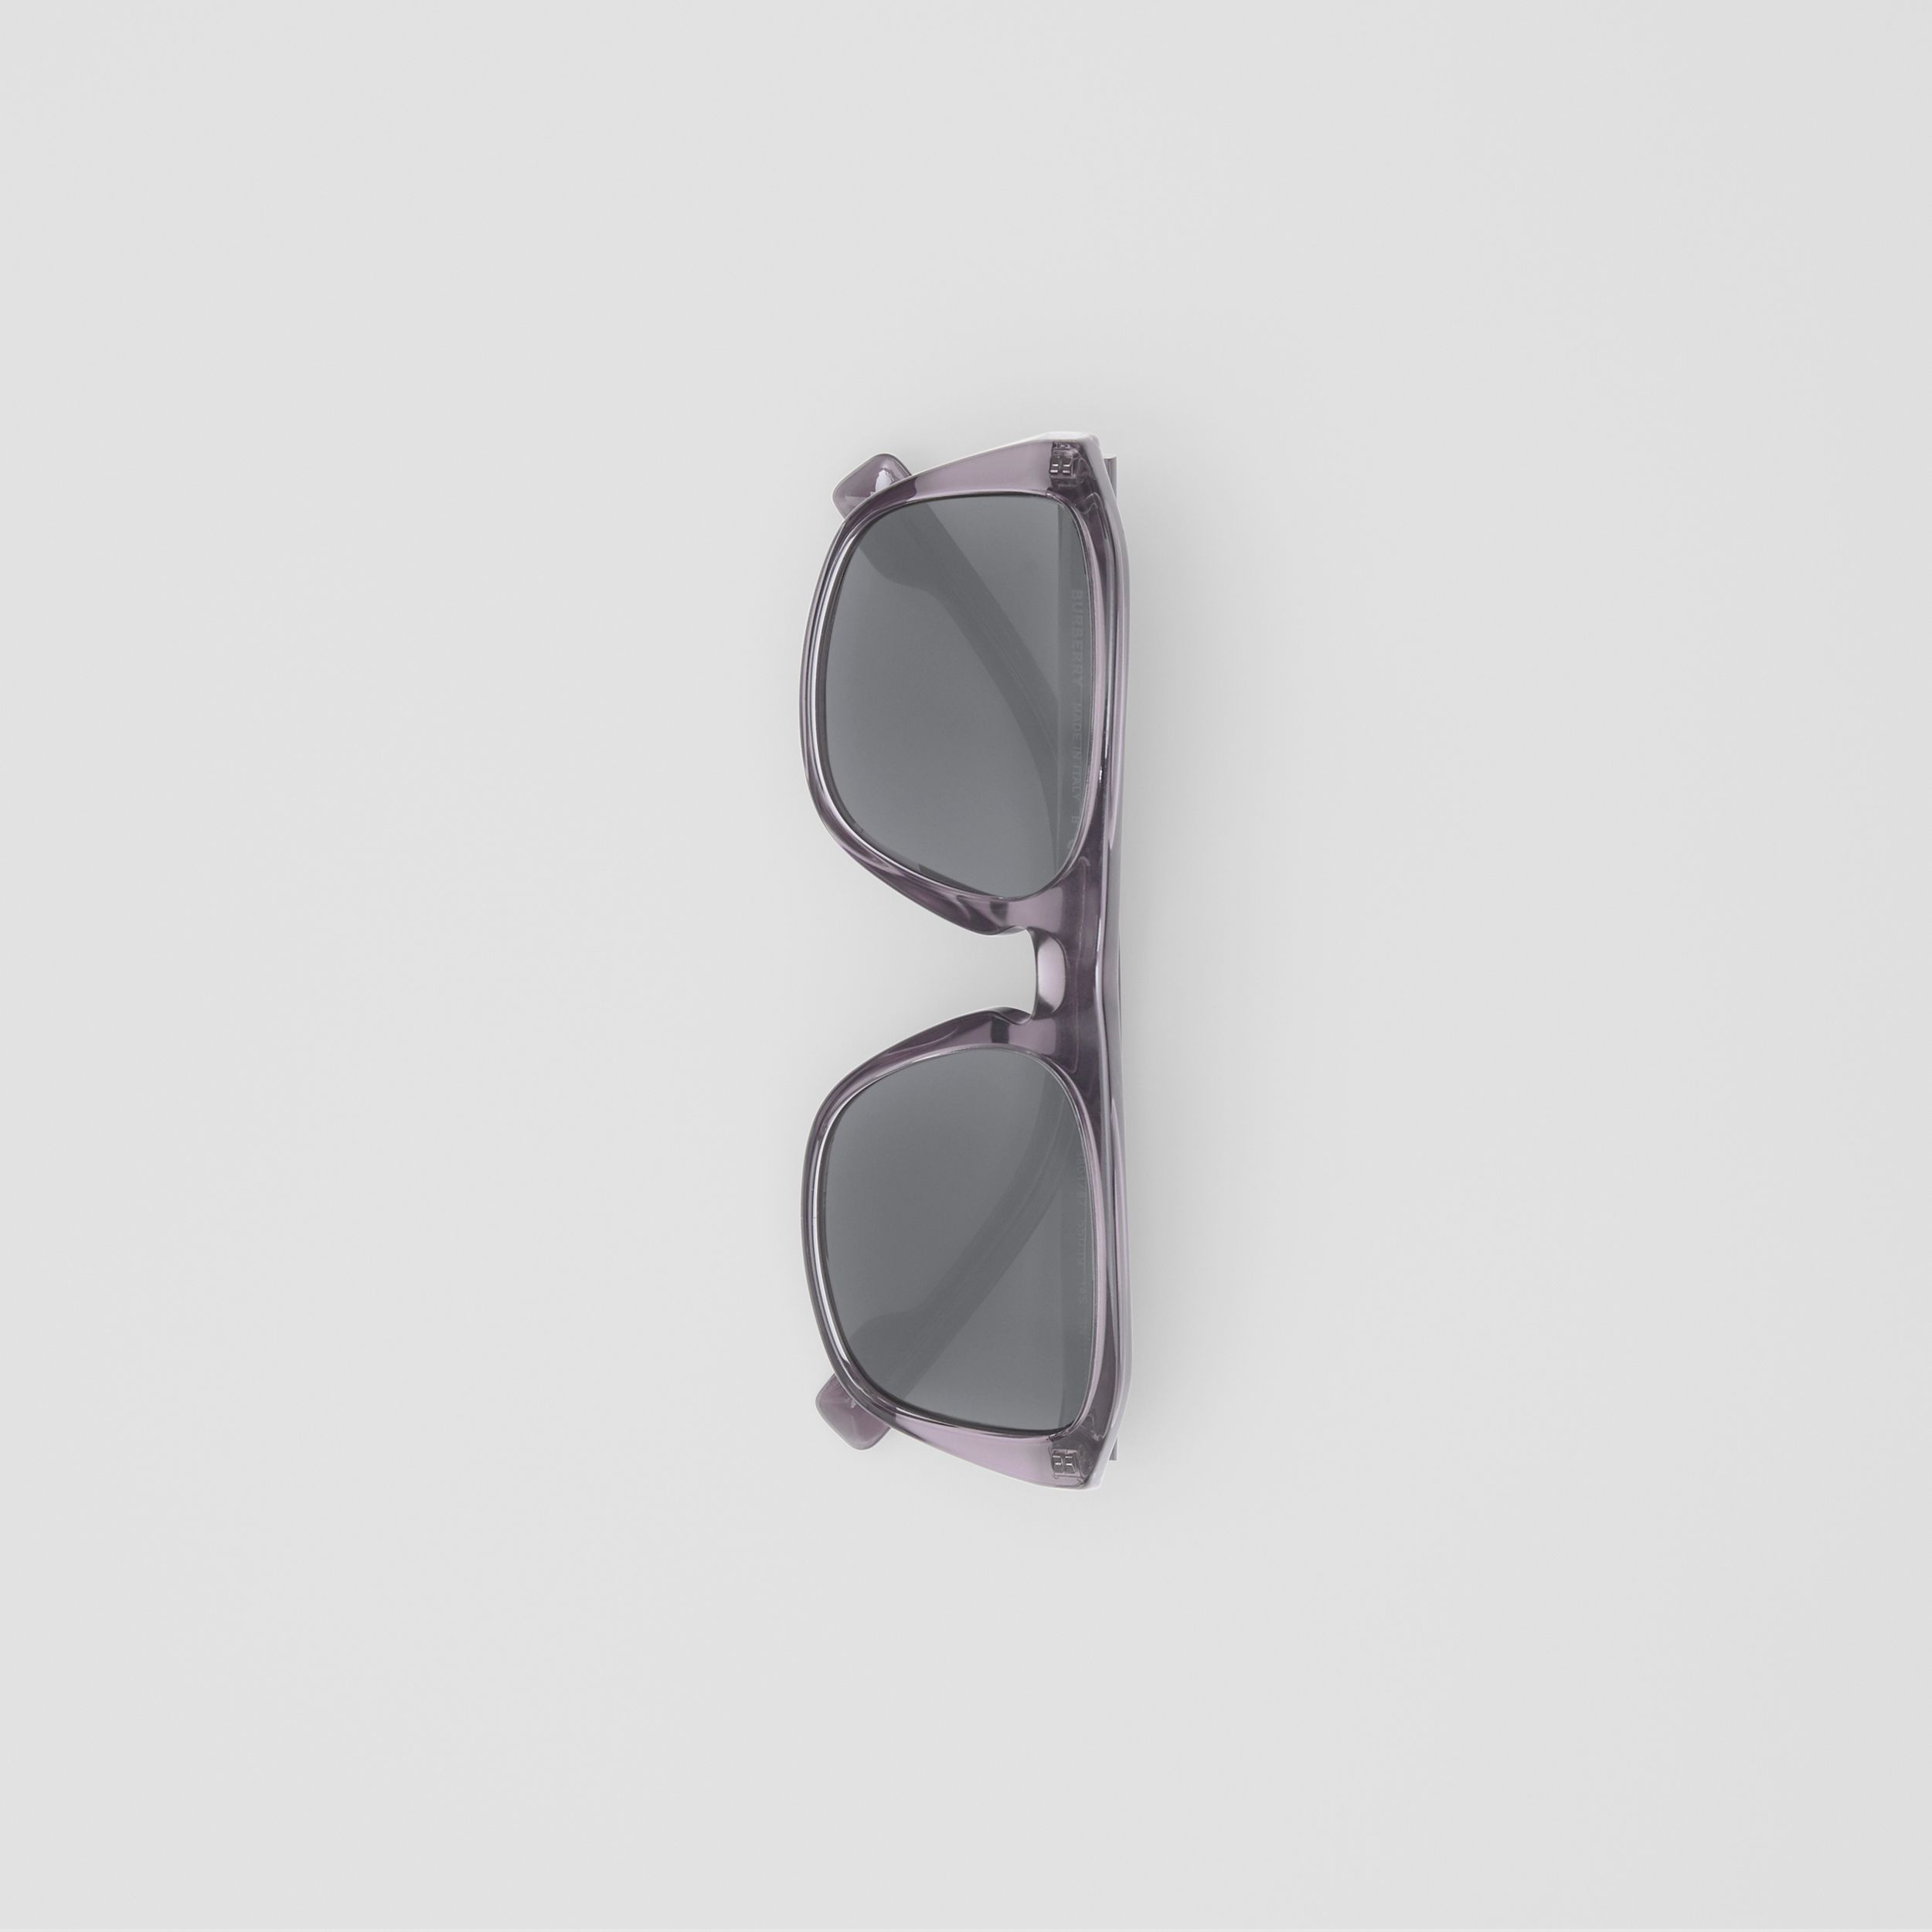 Square Frame Sunglasses in Grey - Men | Burberry Singapore - 4